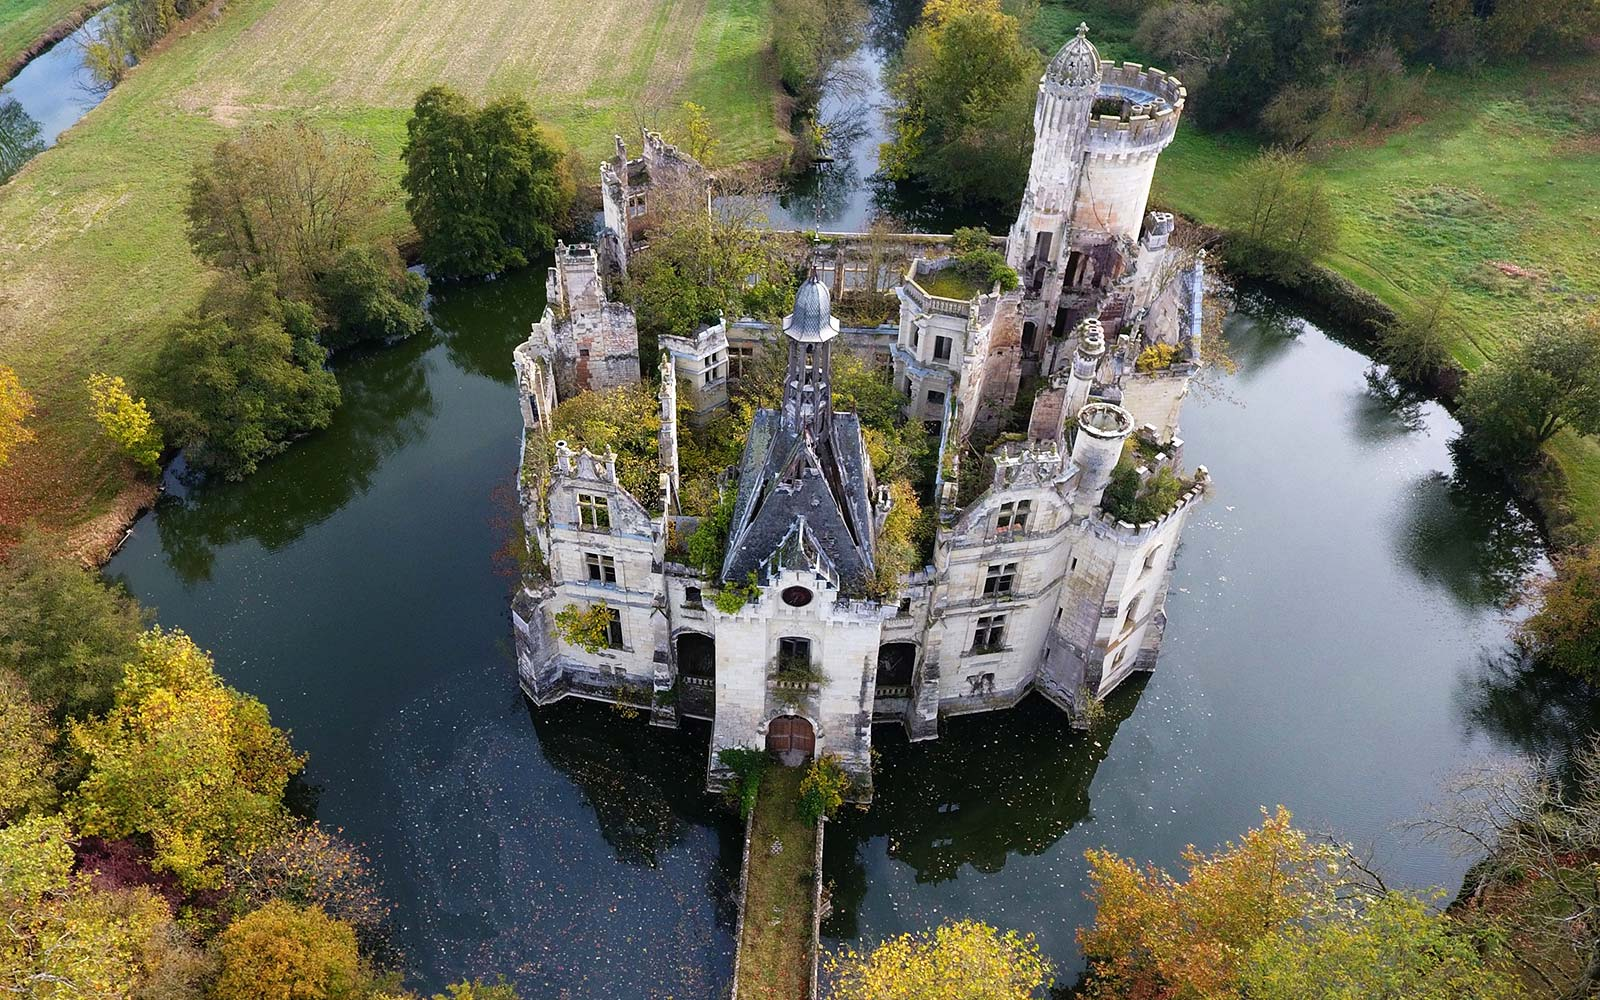 7,500 People Just Bought a Castle in France Together